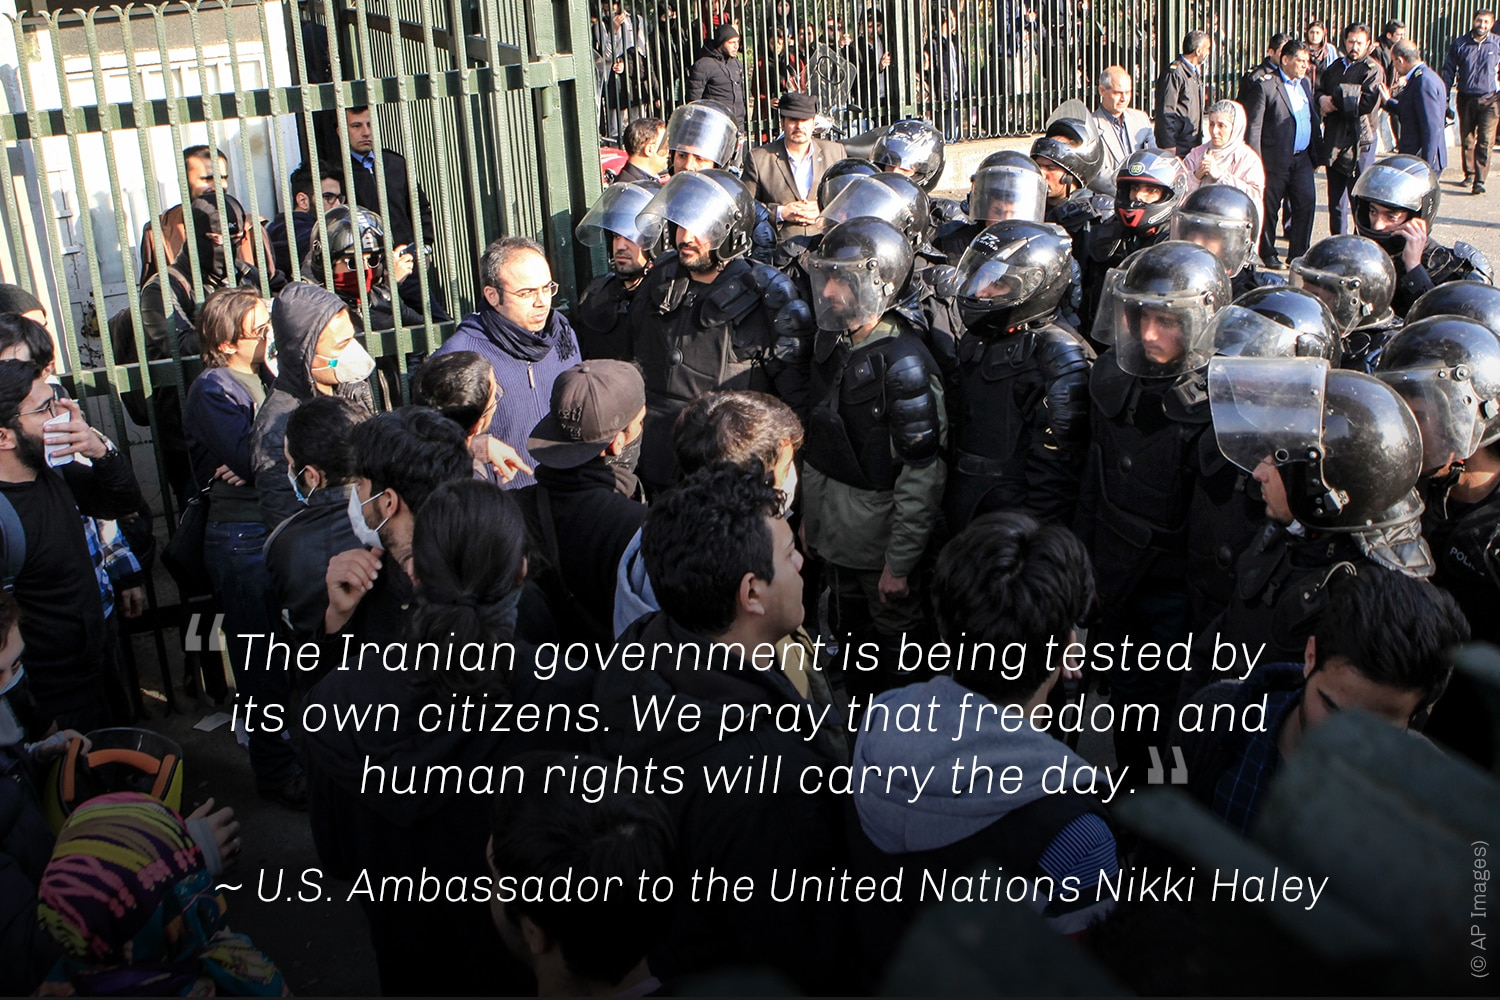 Demonstrators facing group of helmeted men, with Nikki Haley quote (© AP Images)